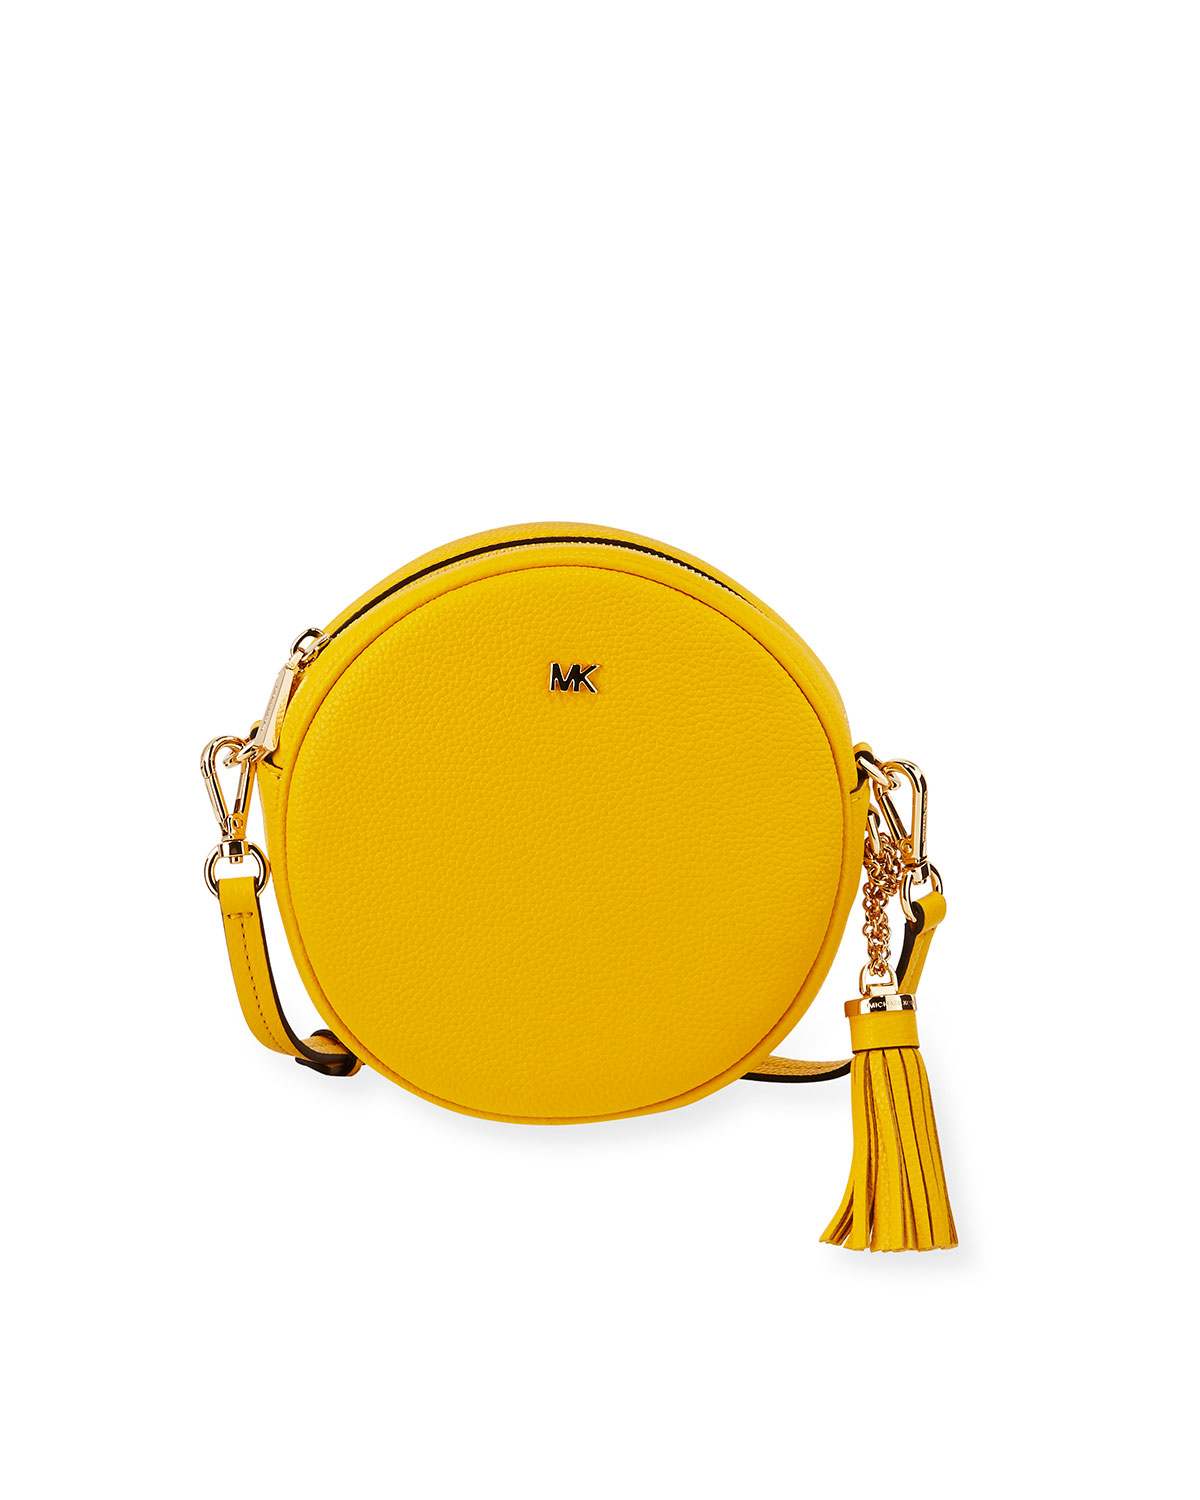 Canteen Medium Round Leather Crossbody Bag - Golden Hardware